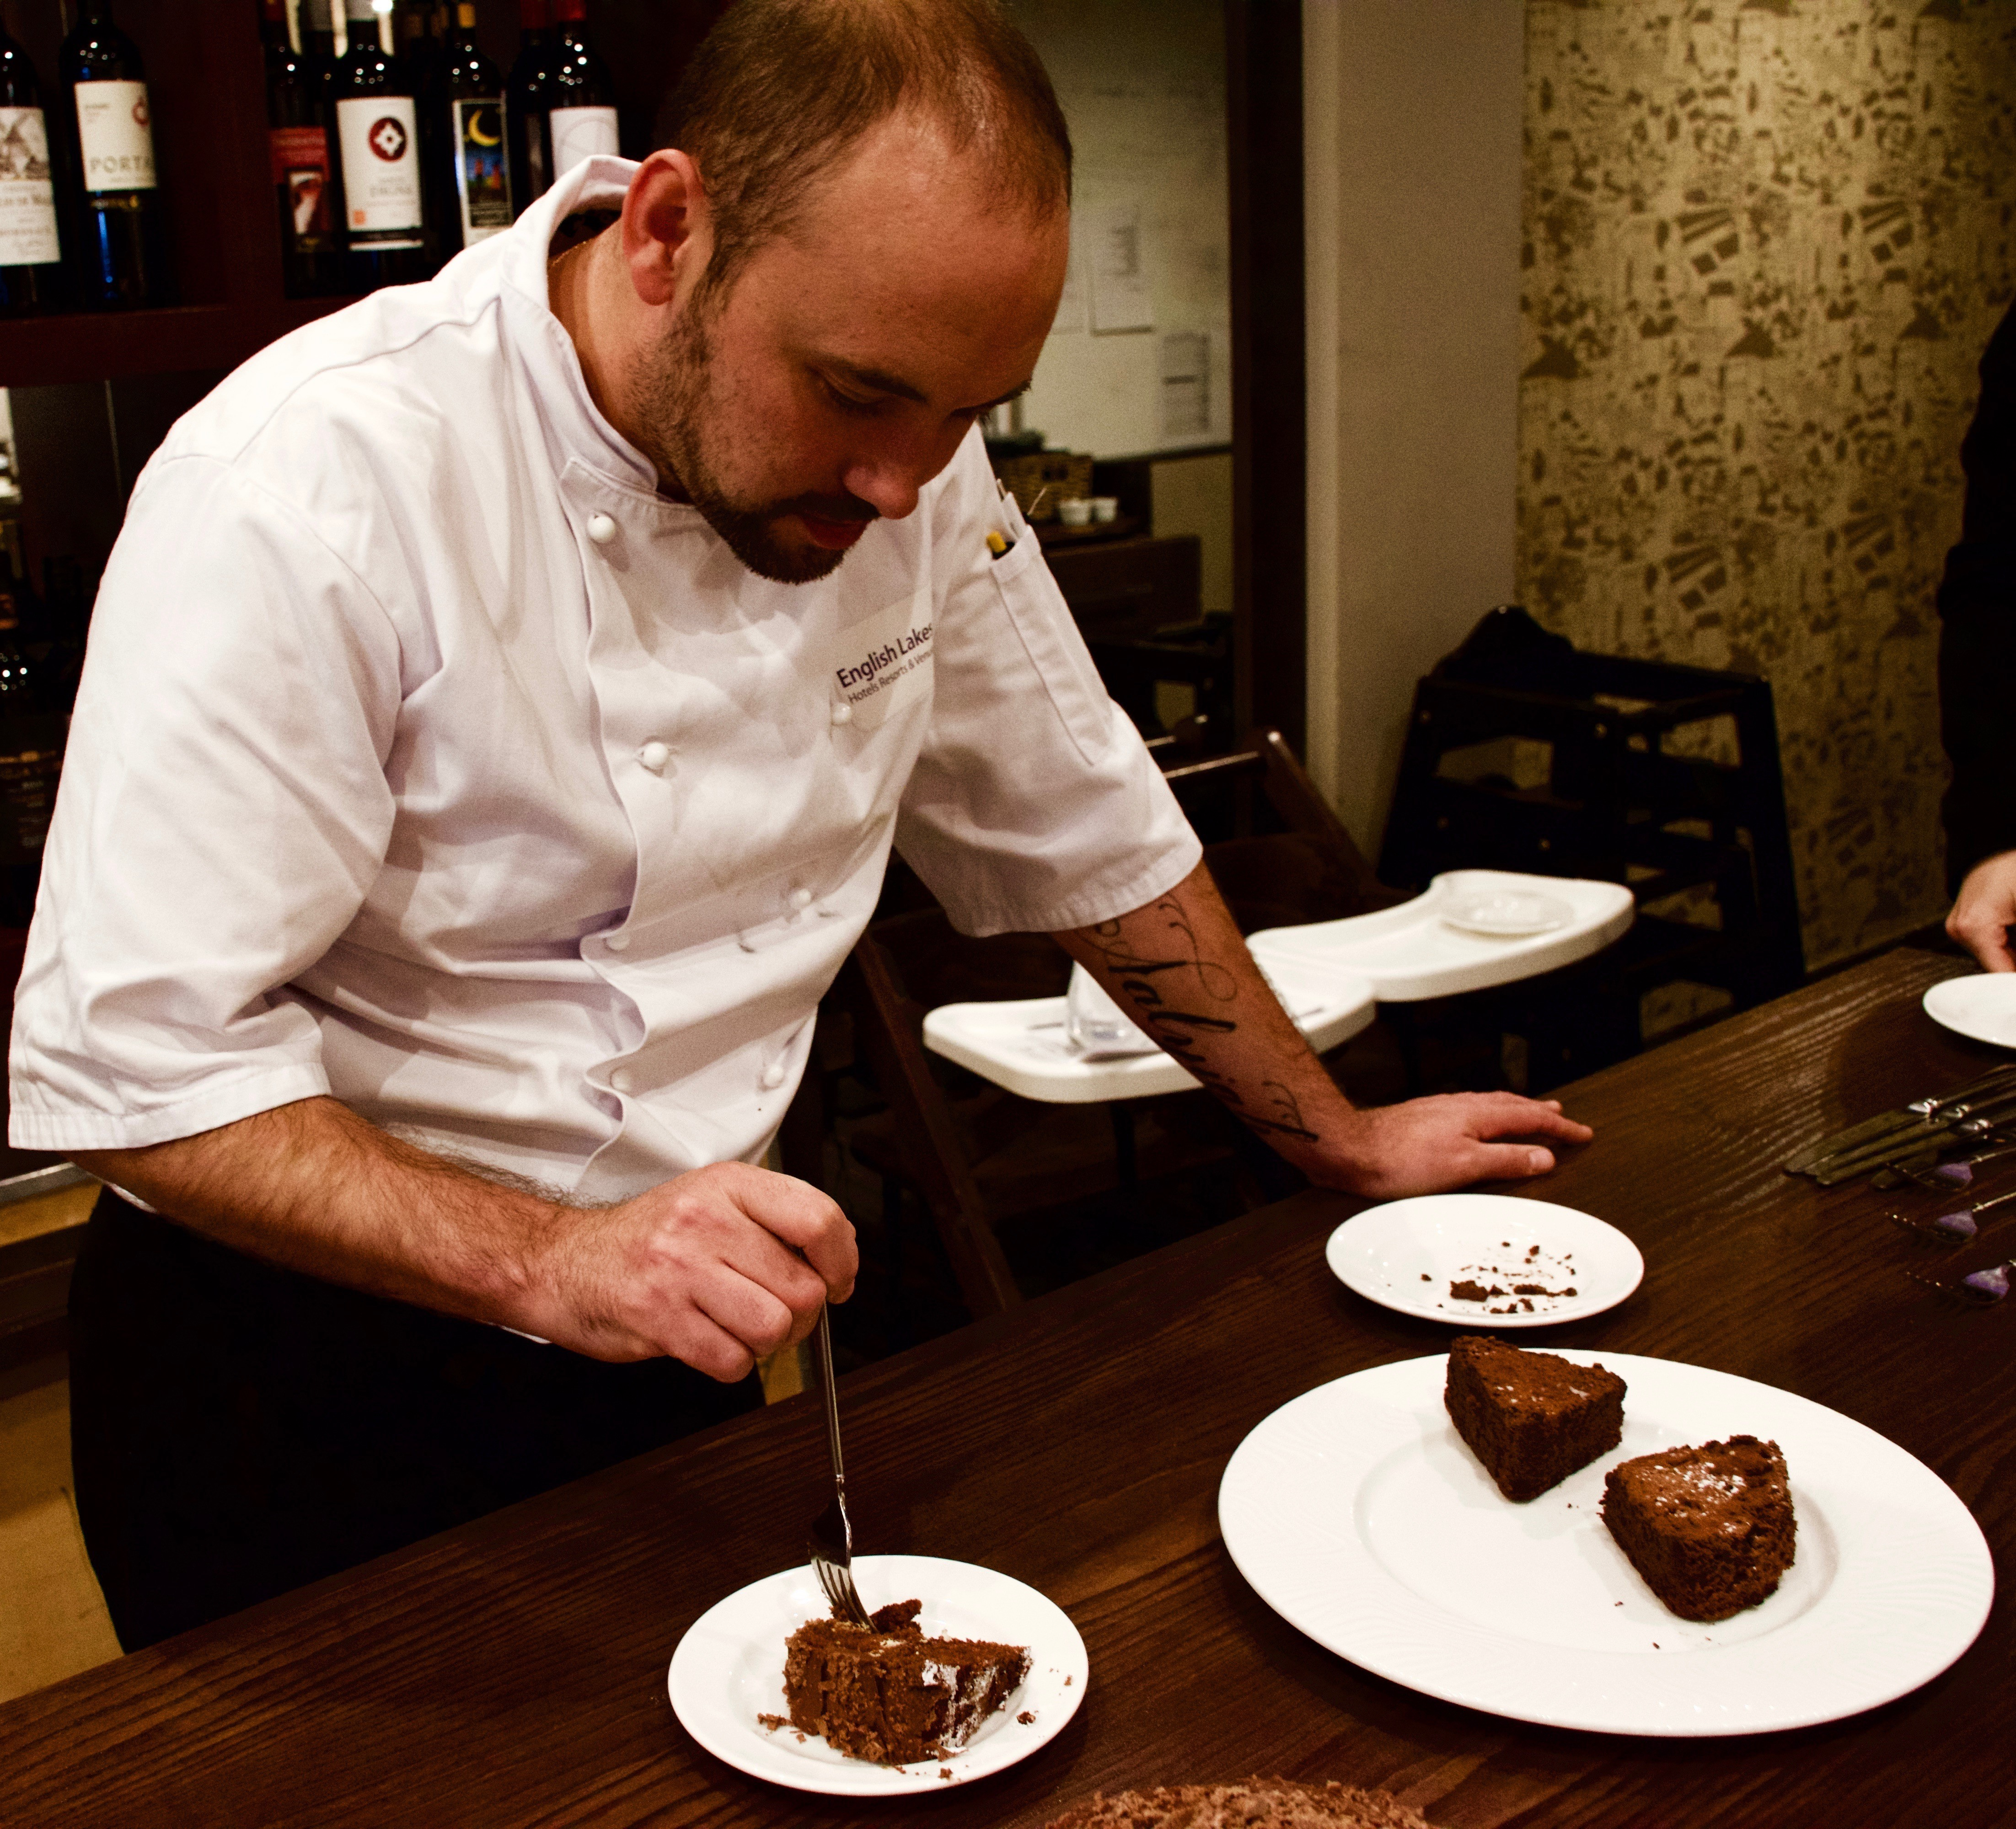 Head Chef, Damian, gets the pleasure of tasting all the entries. They were so tasty he ate the lot!